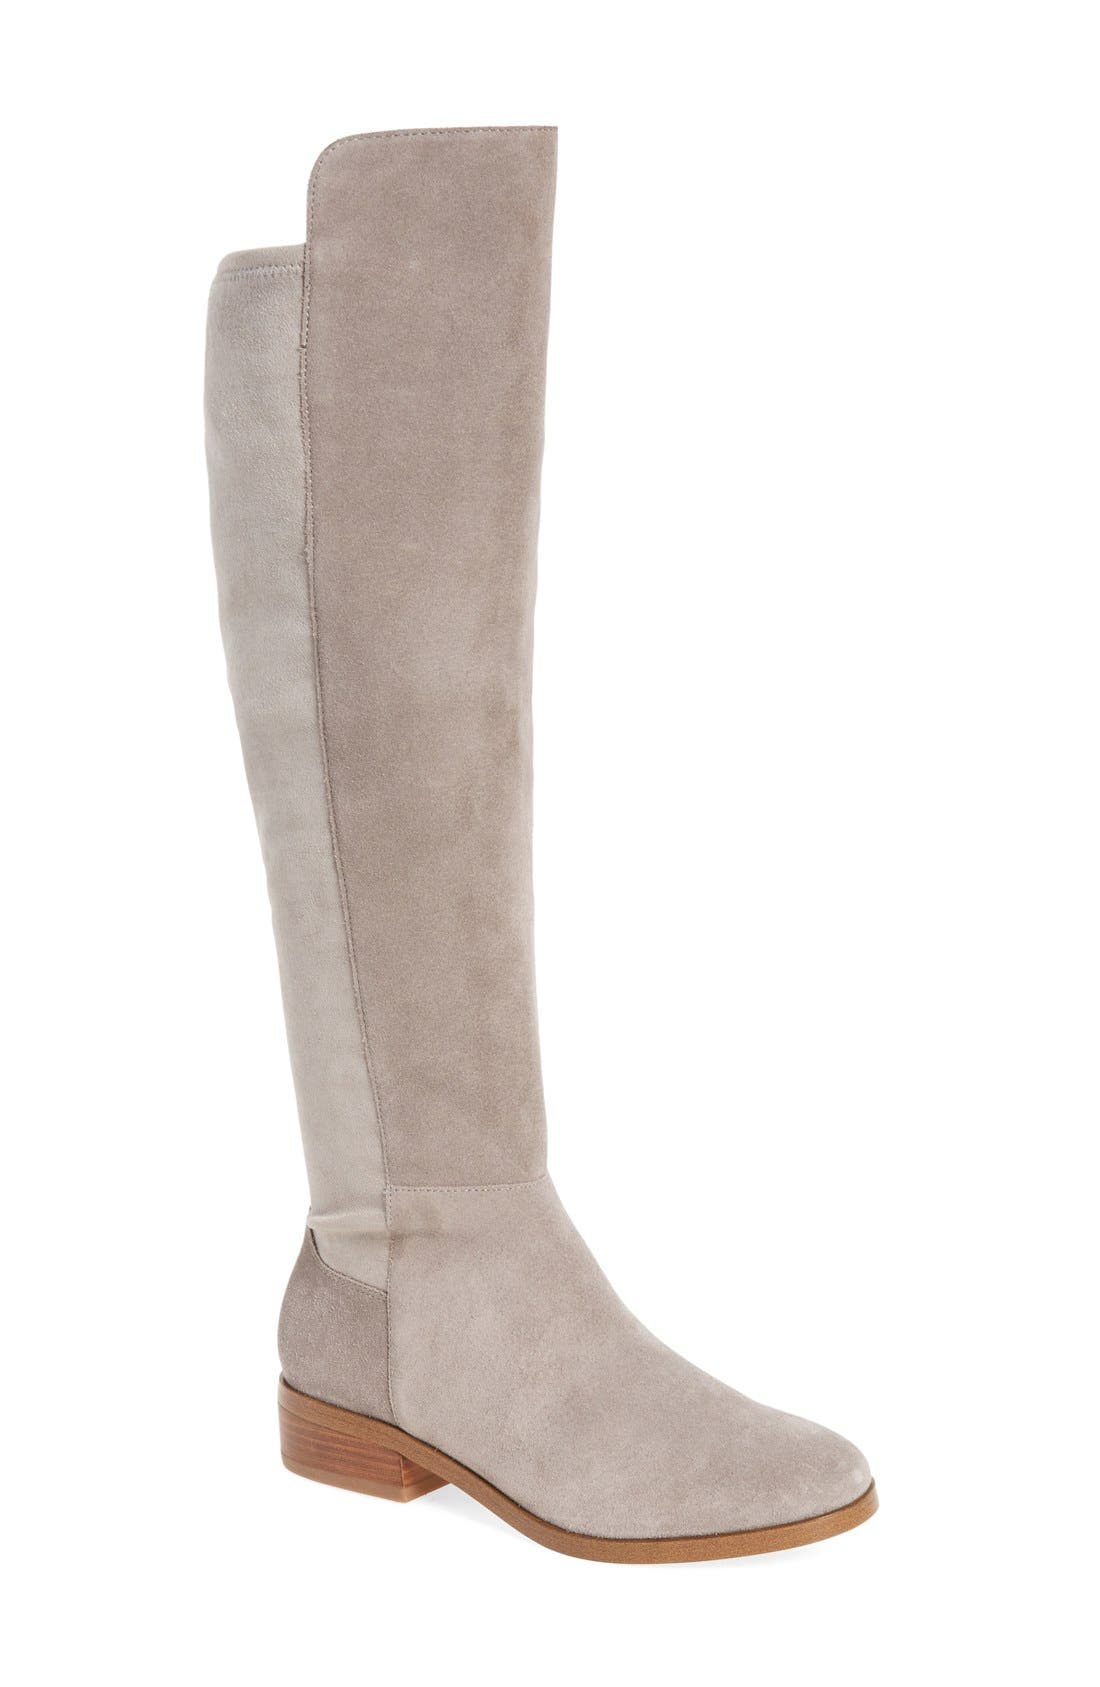 Calypso Over the Knee Boot,                             Main thumbnail 1, color,                             MUSHROOM SUEDE